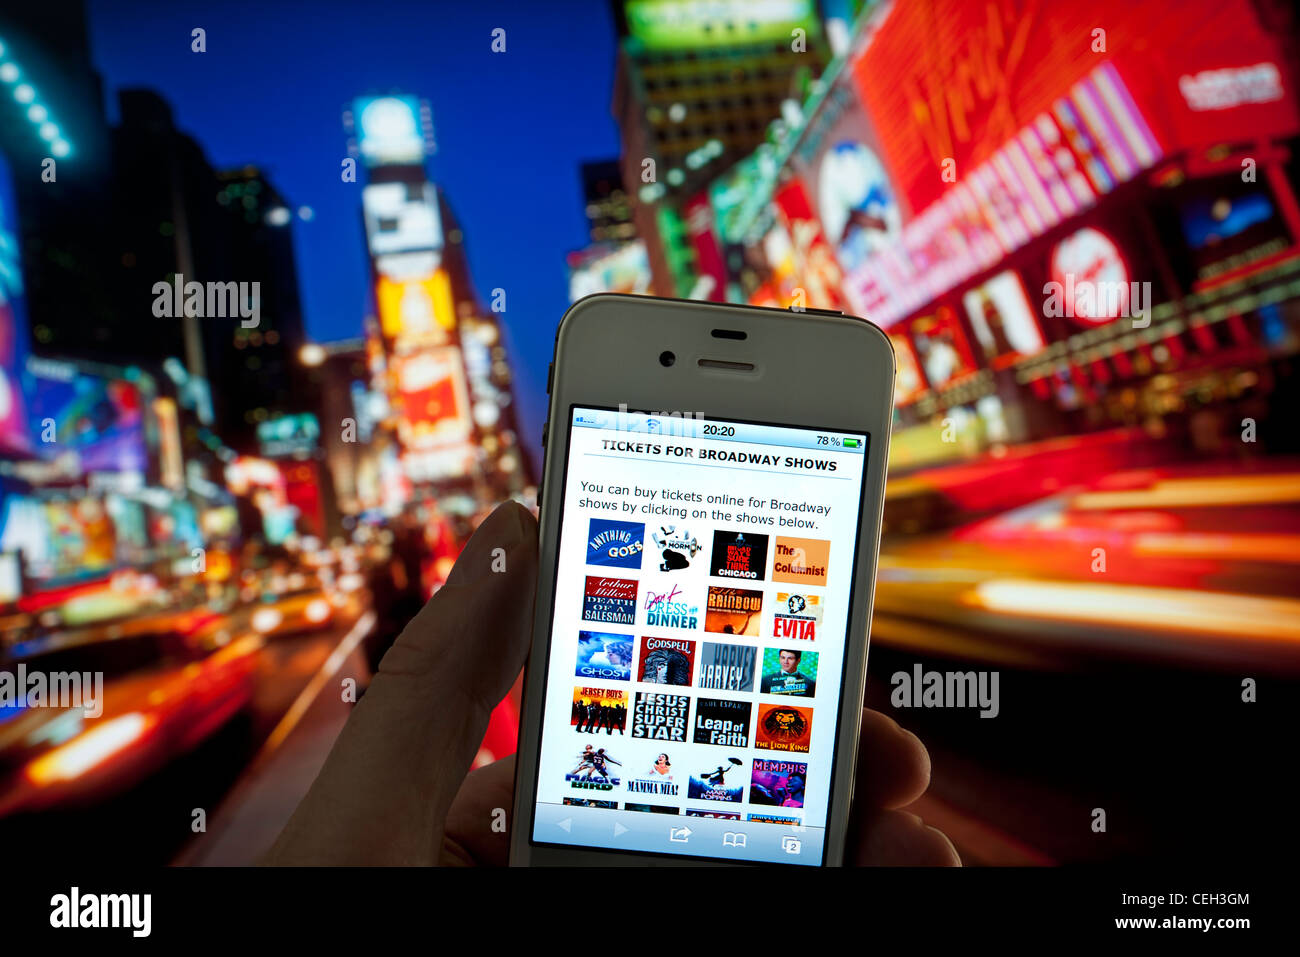 Apple iPhone at dusk with screen displaying live on-line ticket purchase for Broadway theater shows Times Square - Stock Image